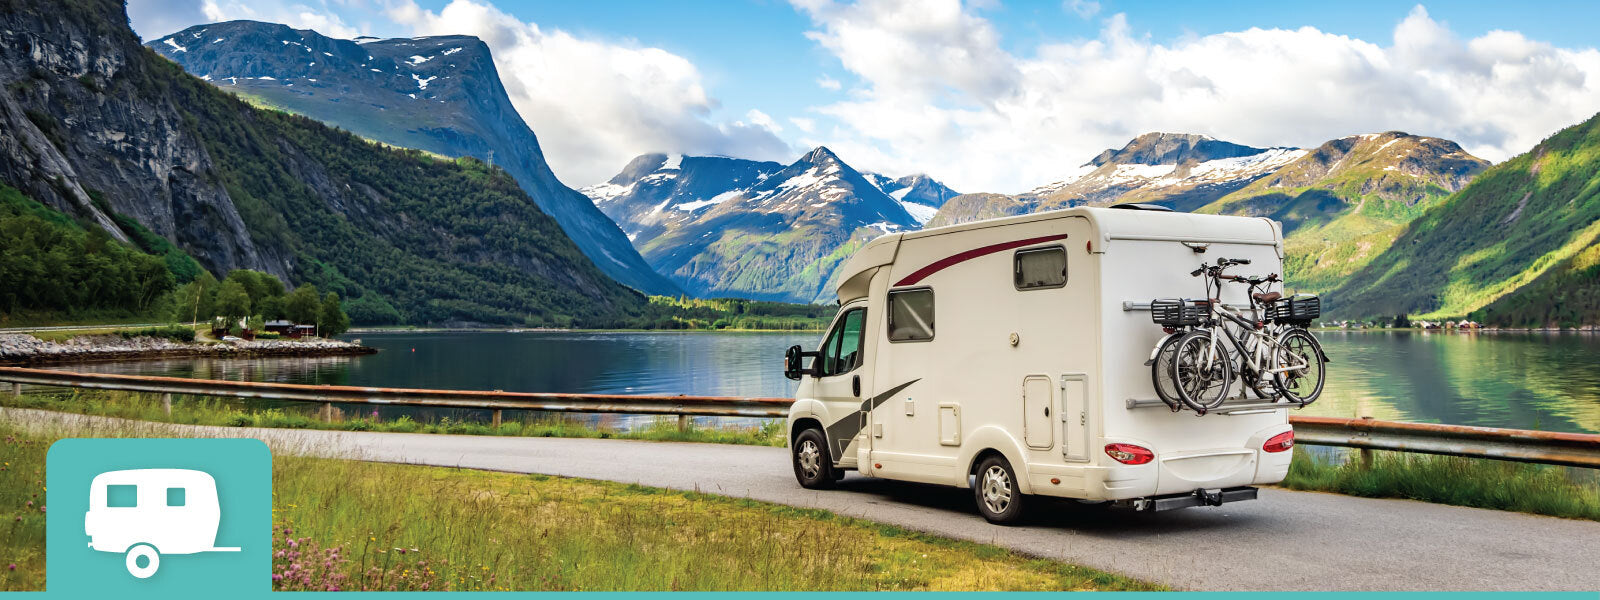 Learn more about Unique Camping + Marine. Makers of RV Digest-It holding tank treatment. RV and marine guides and resources.